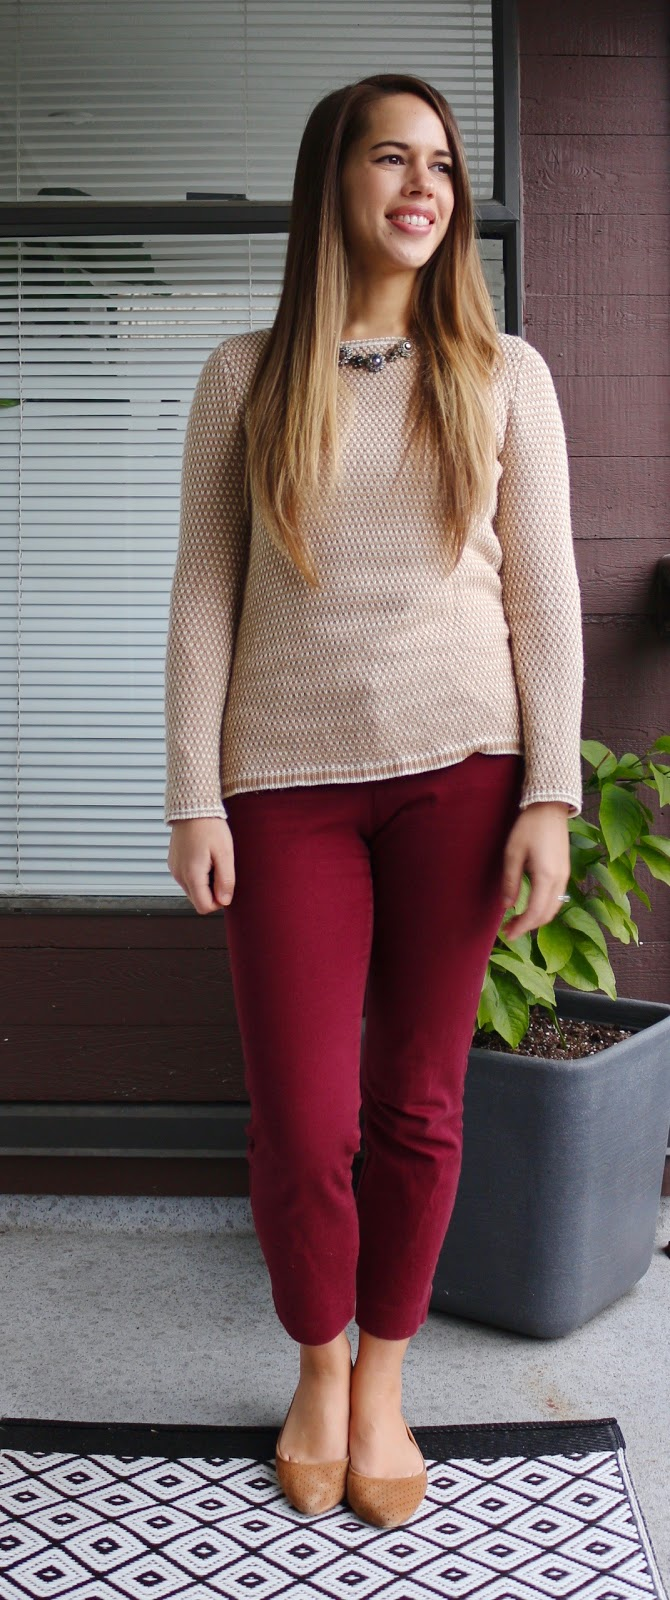 Jules in Flats - Camel and Burgundy Work Outfit